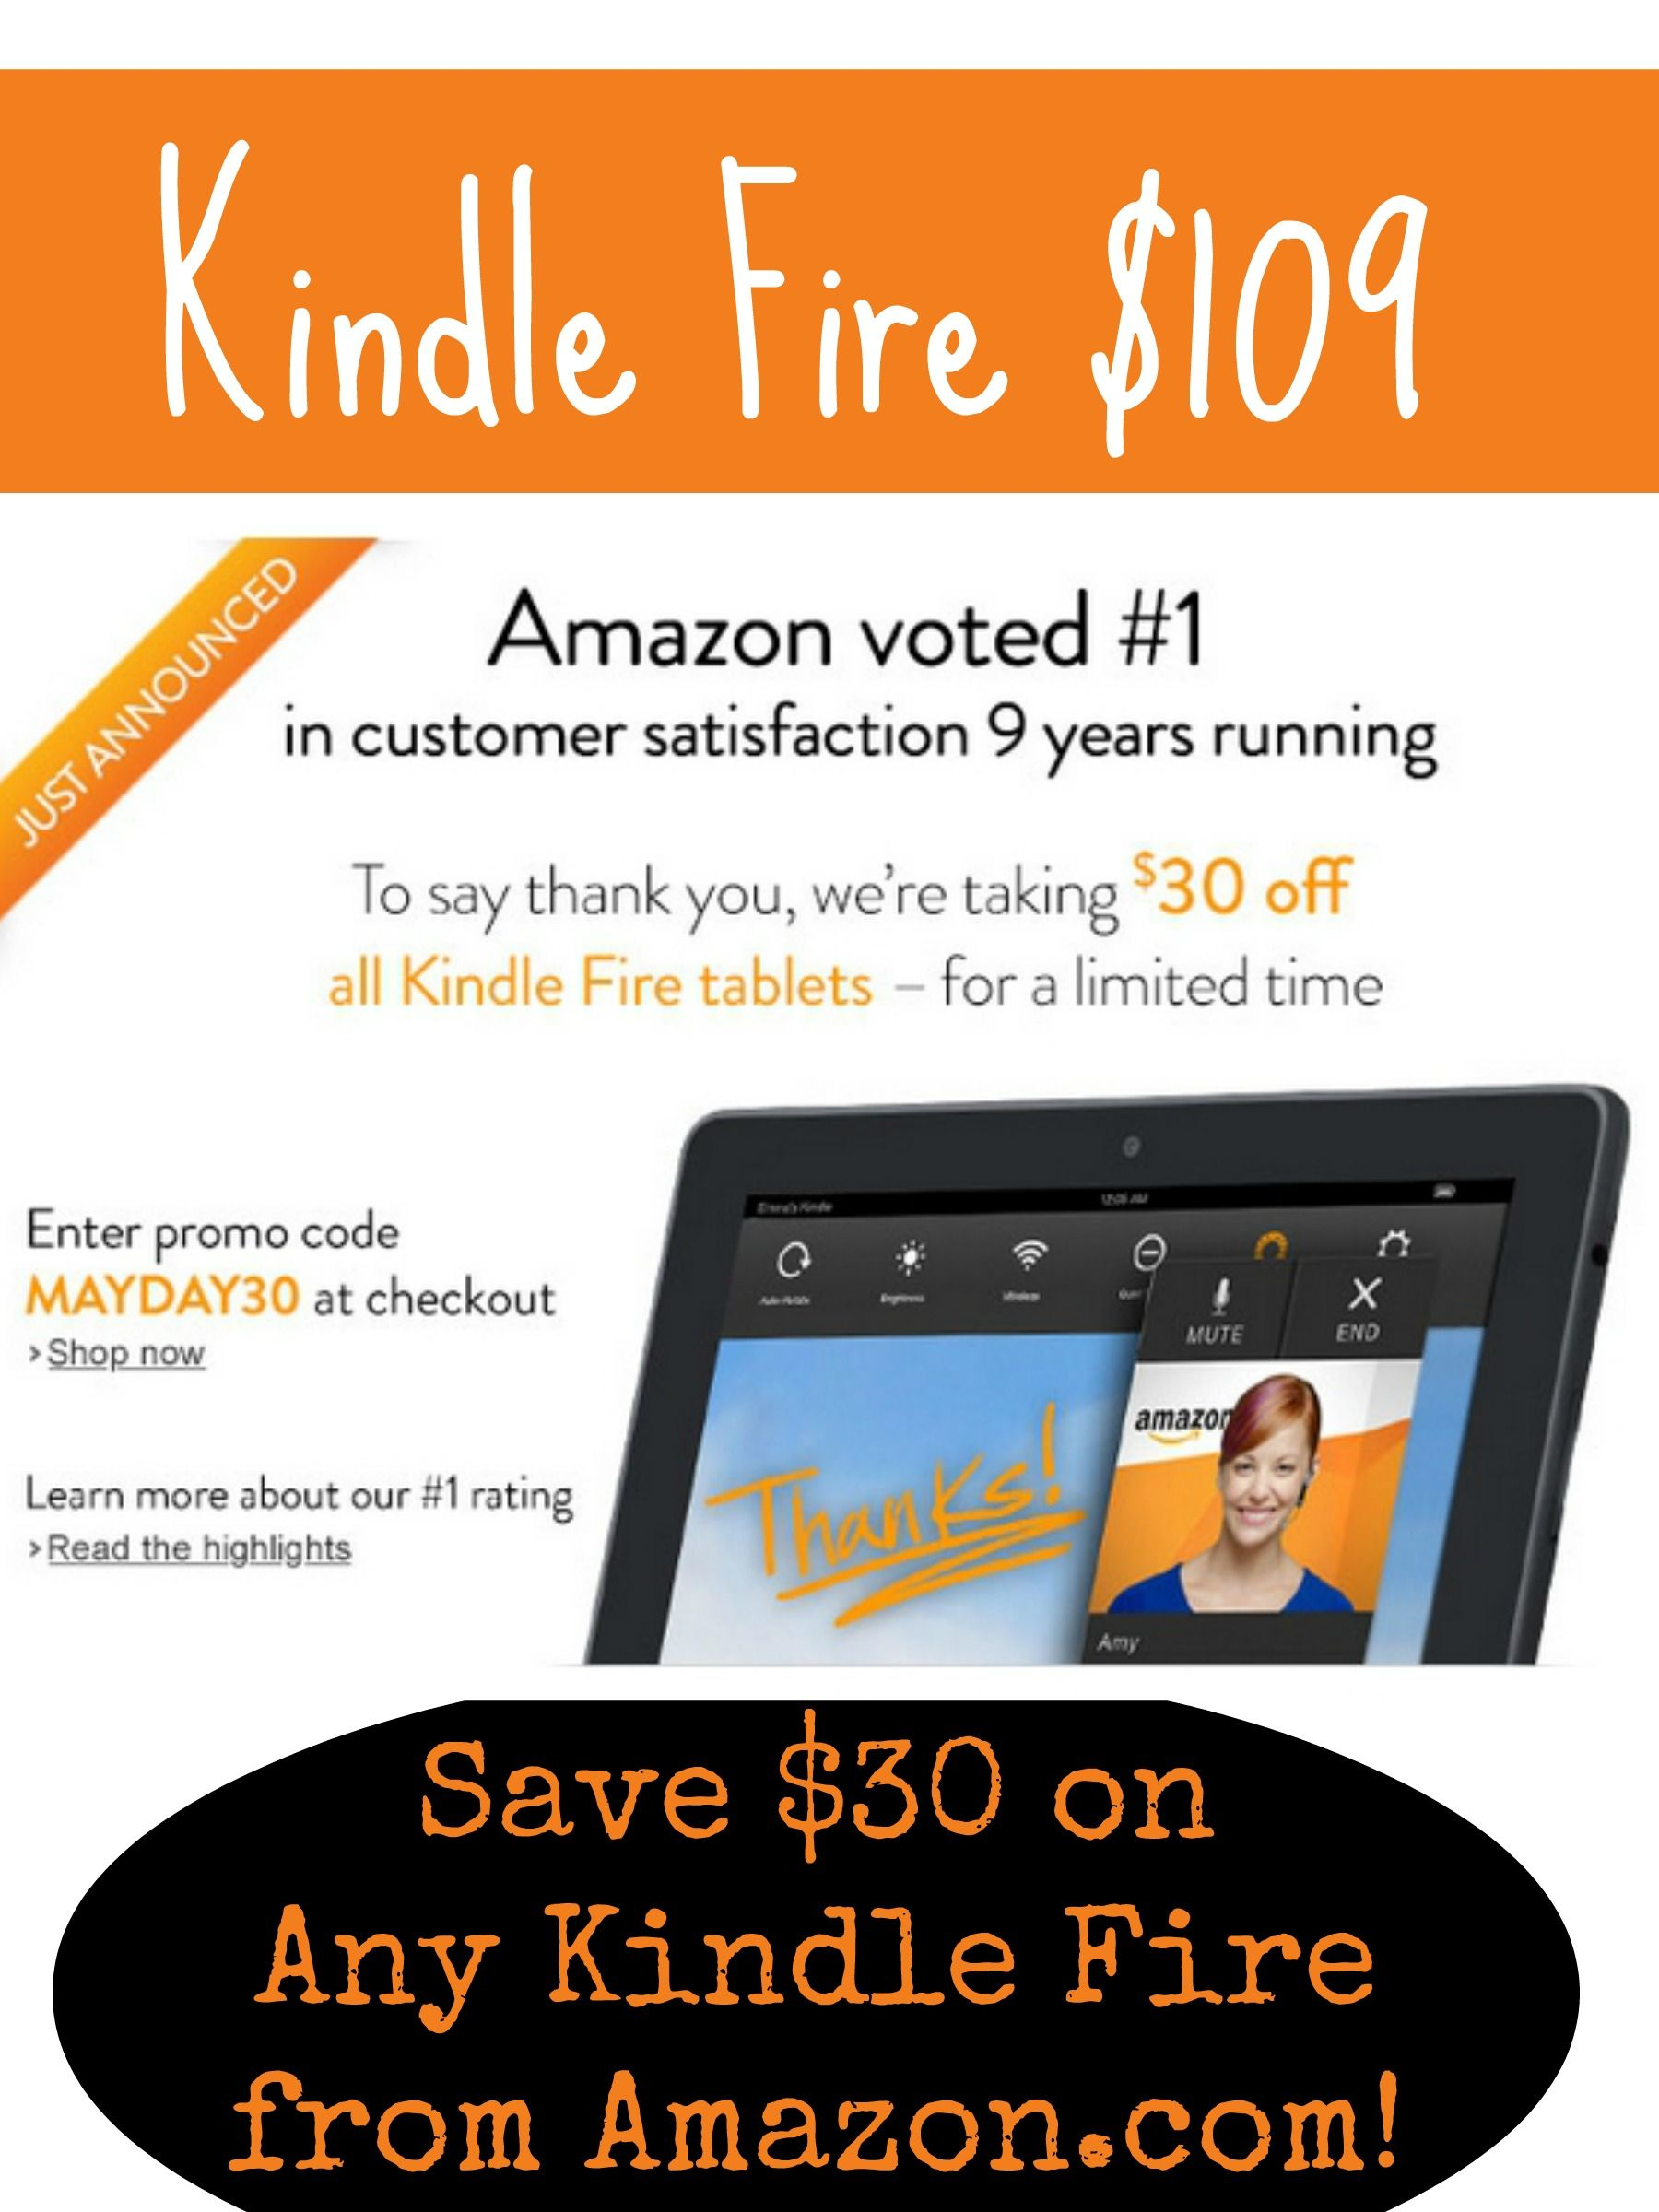 For All My Friends Looking For A Deal On A Kindle Fire Use This Coupon Code On Amazon One Of The Printable Coupons Kindle Fire Tablet Free Printable Coupons